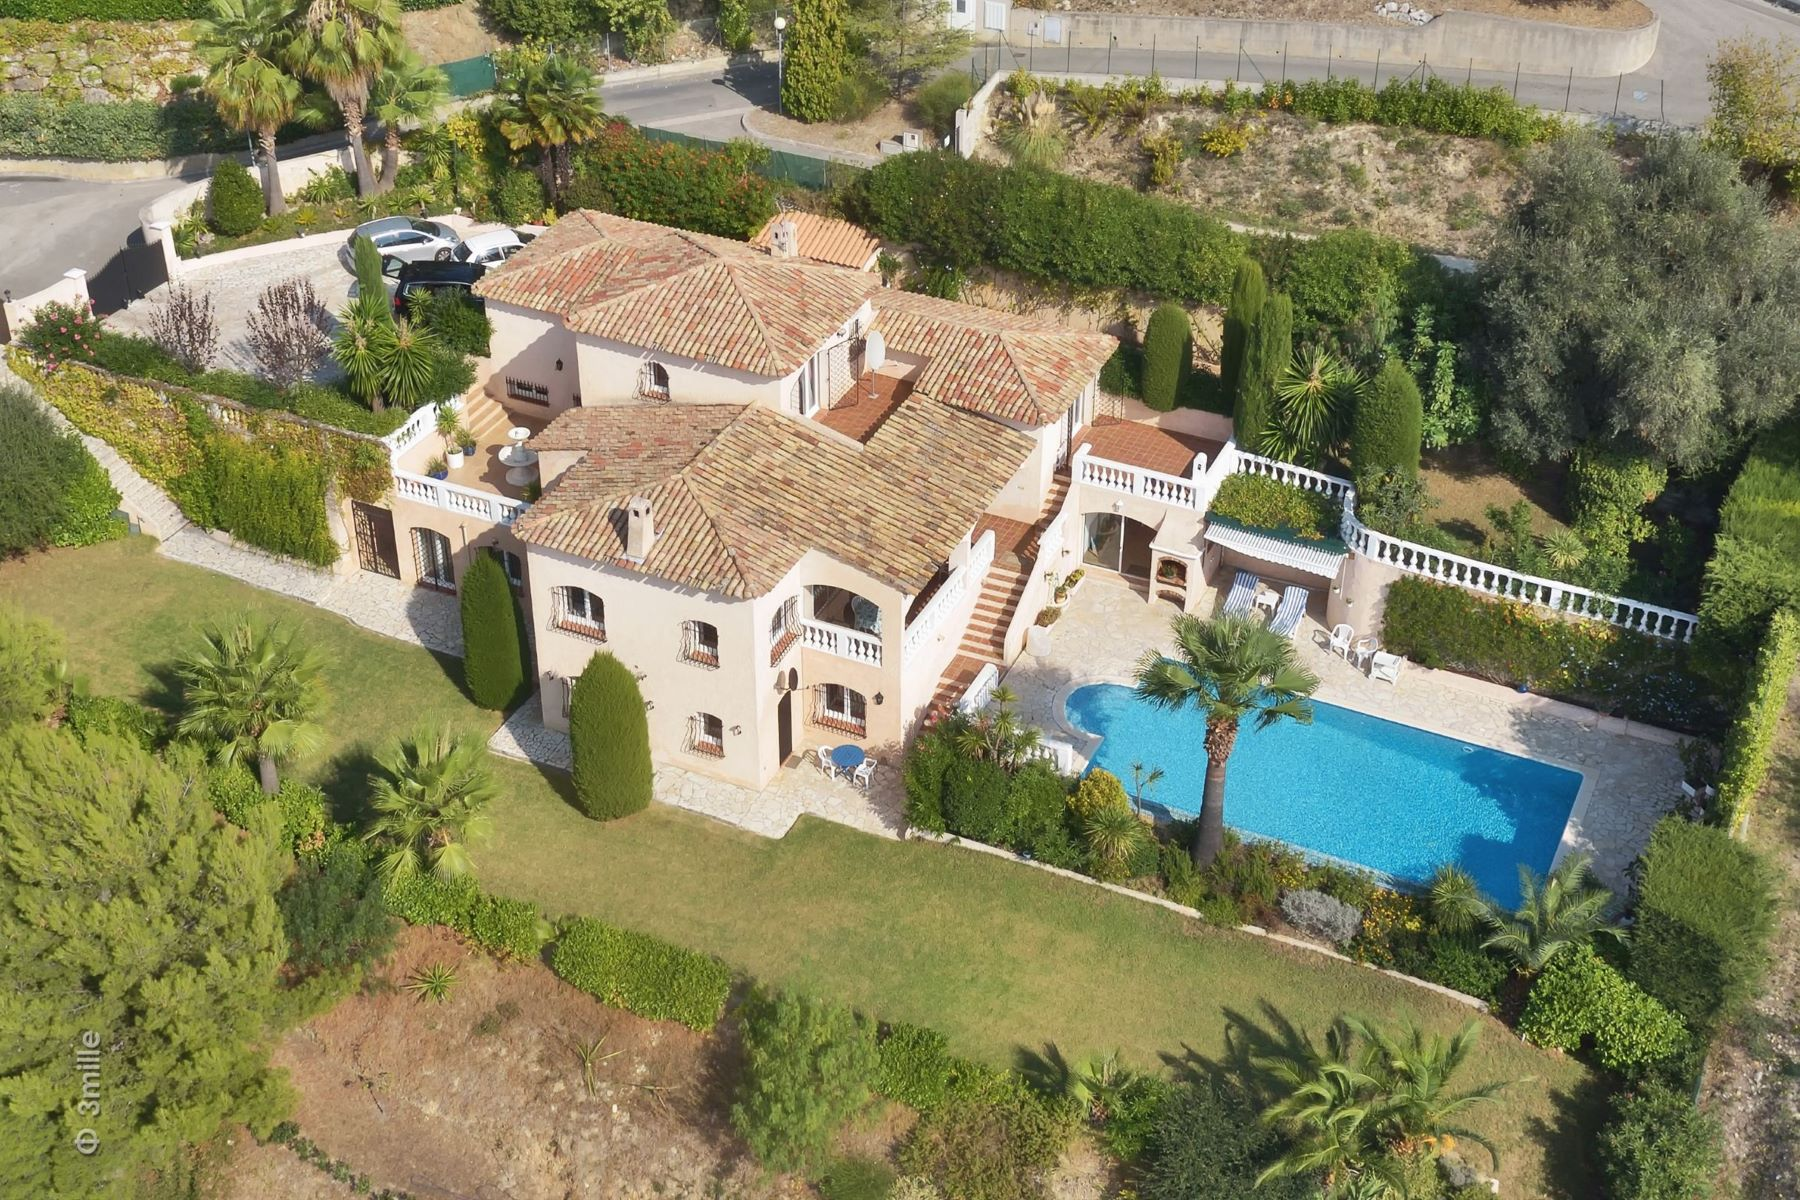 Villa per Vendita alle ore Luxury villa in a private domain with views to the Bay of Angels over Nice Nice, Provenza-Alpi-Costa Azzurra, 06000 Francia